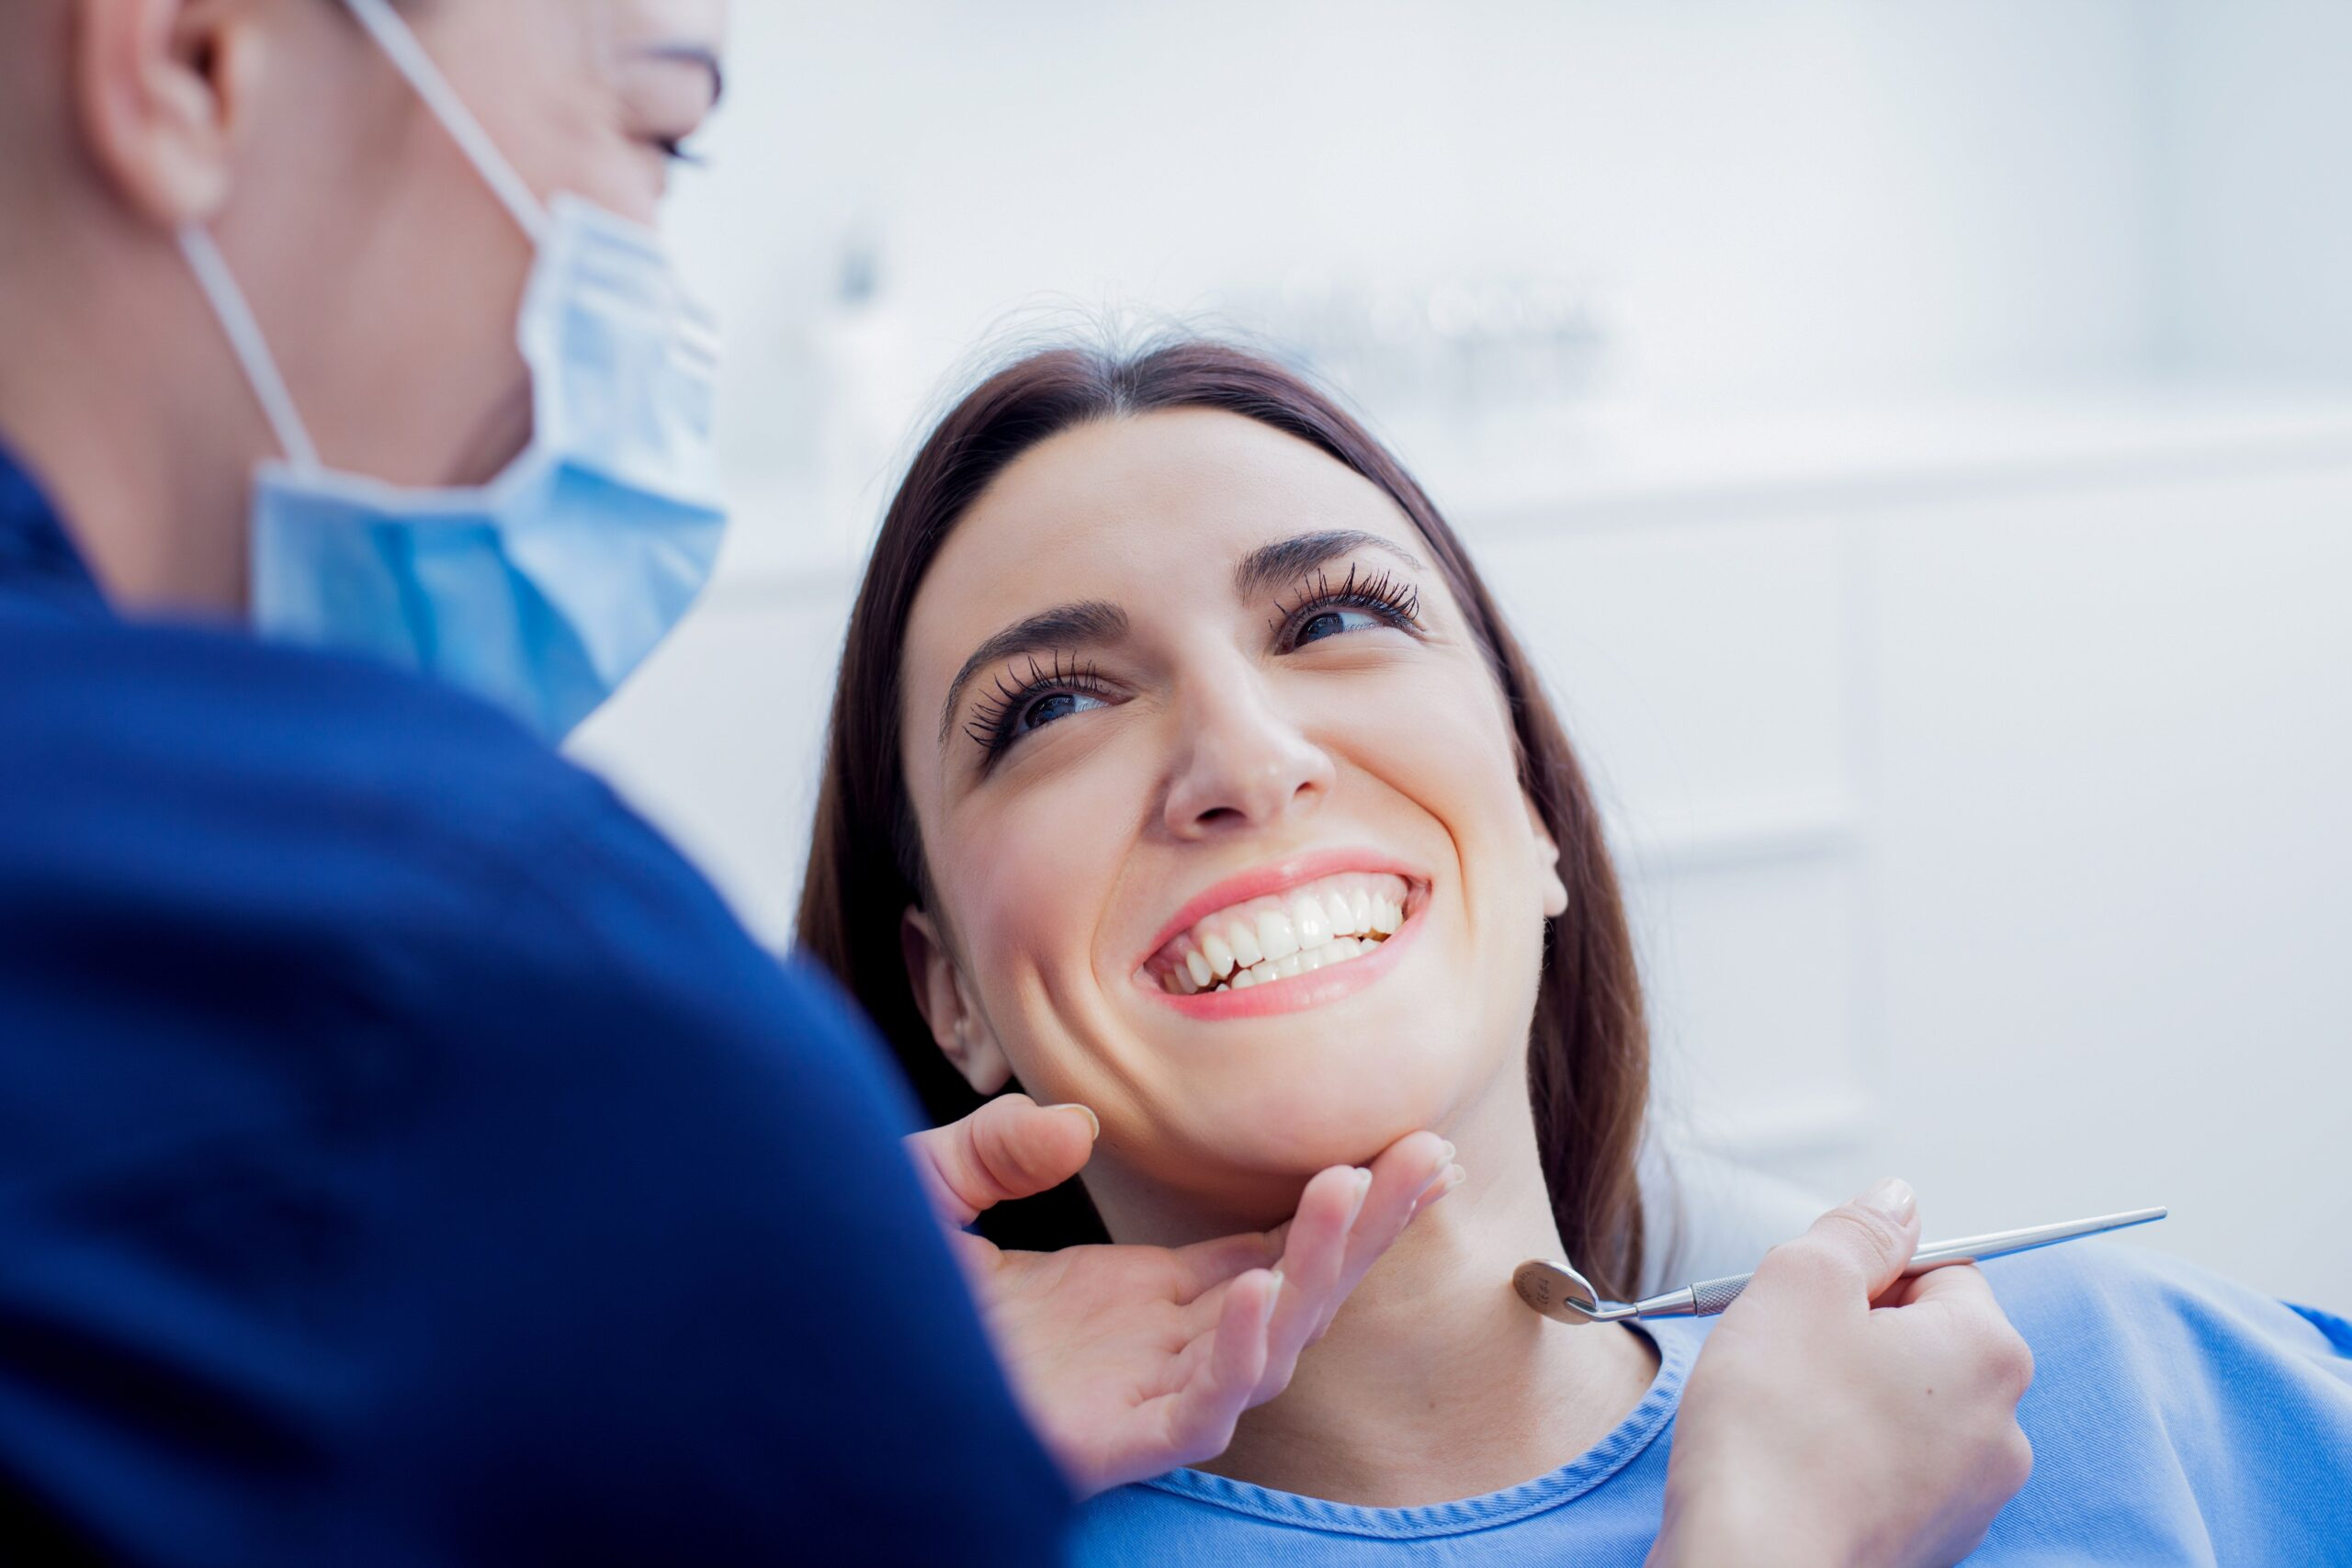 South Sioux City Dentist | Do I Really Need an Exam?